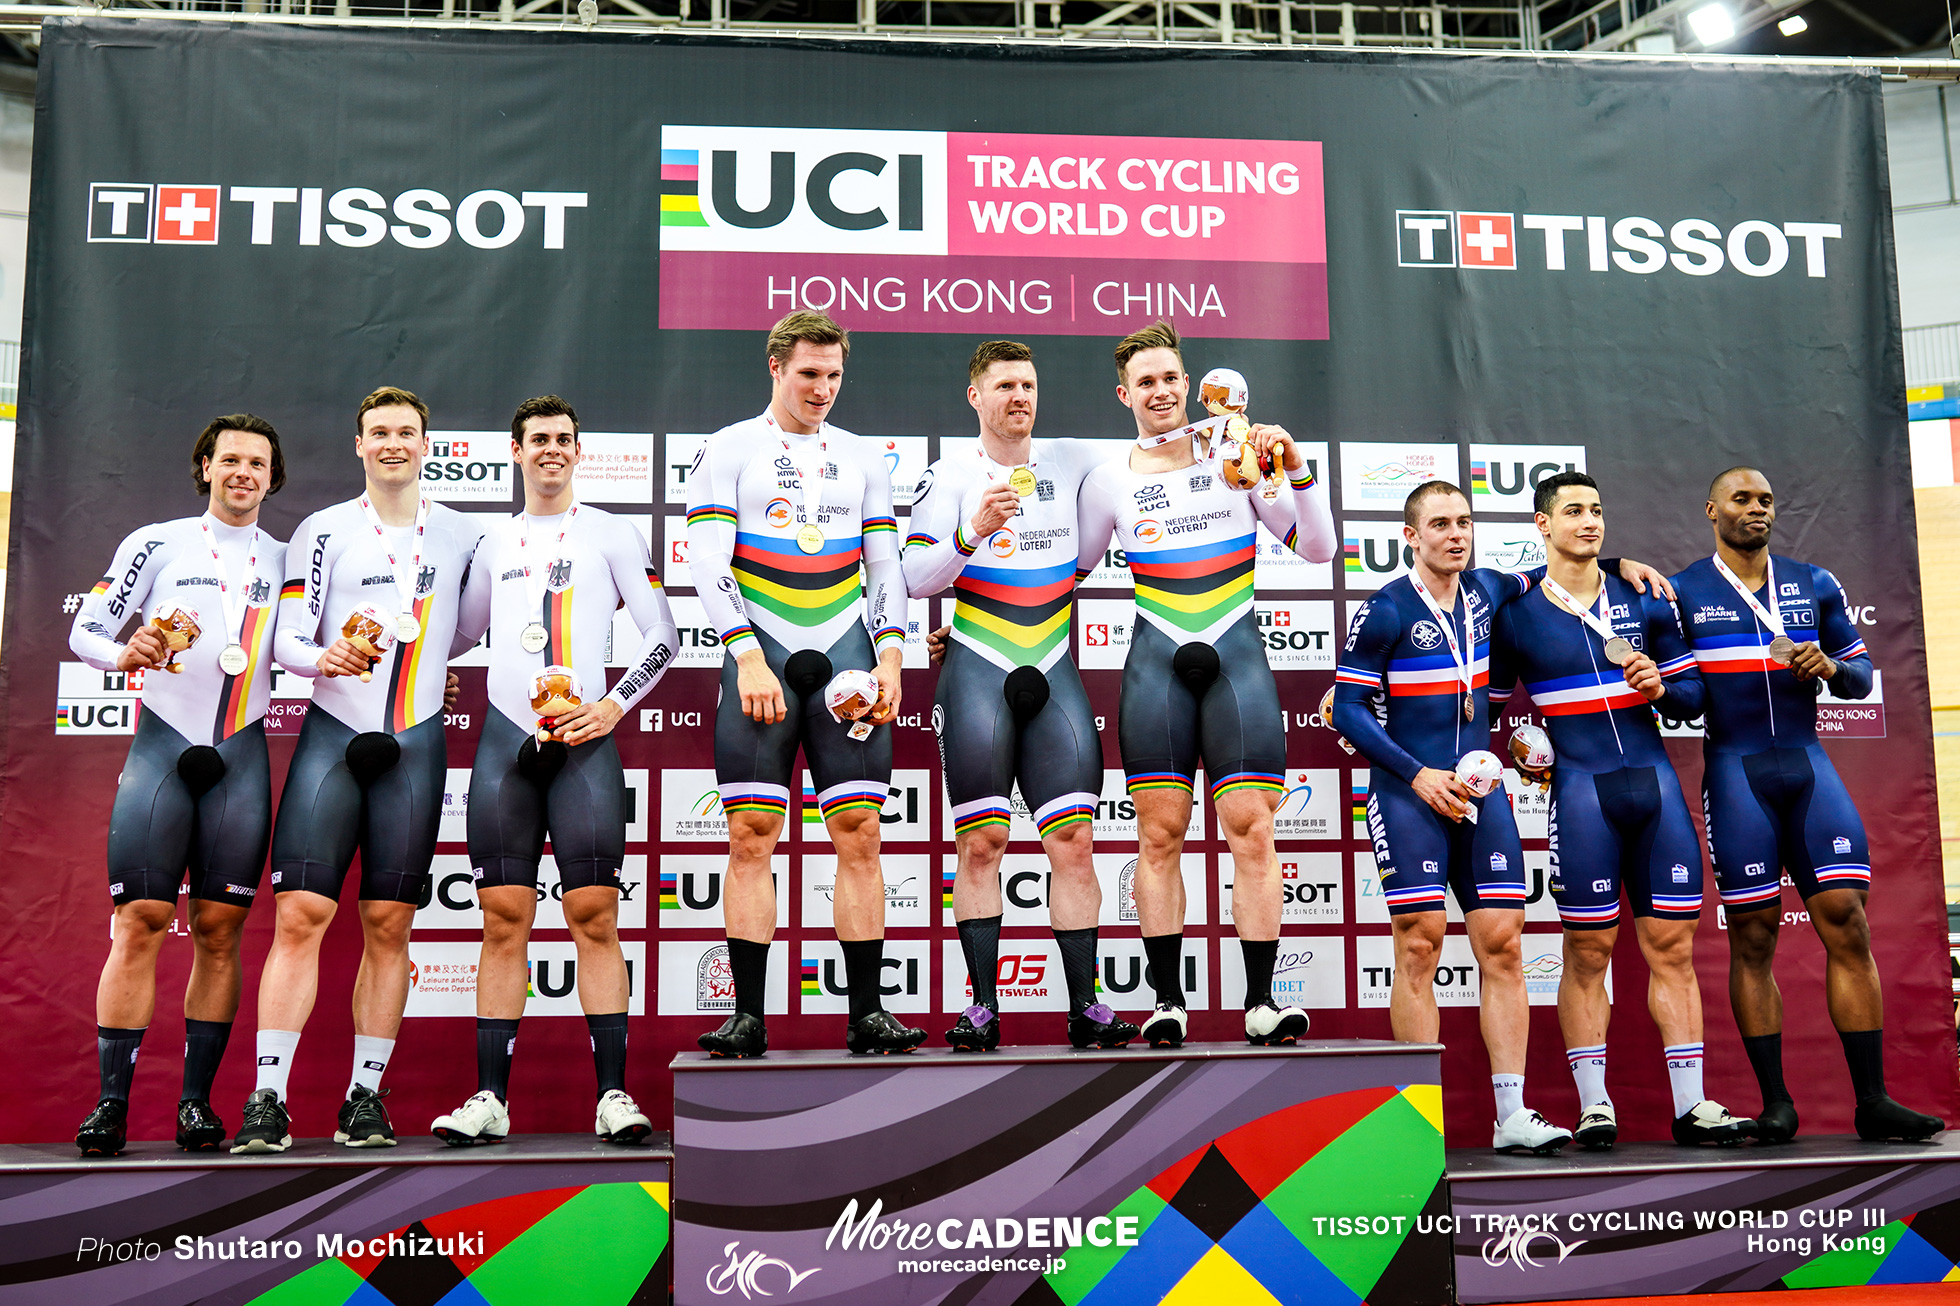 Final / Men's Team Sprint / TISSOT UCI TRACK CYCLING WORLD CUP III, Hong Kong